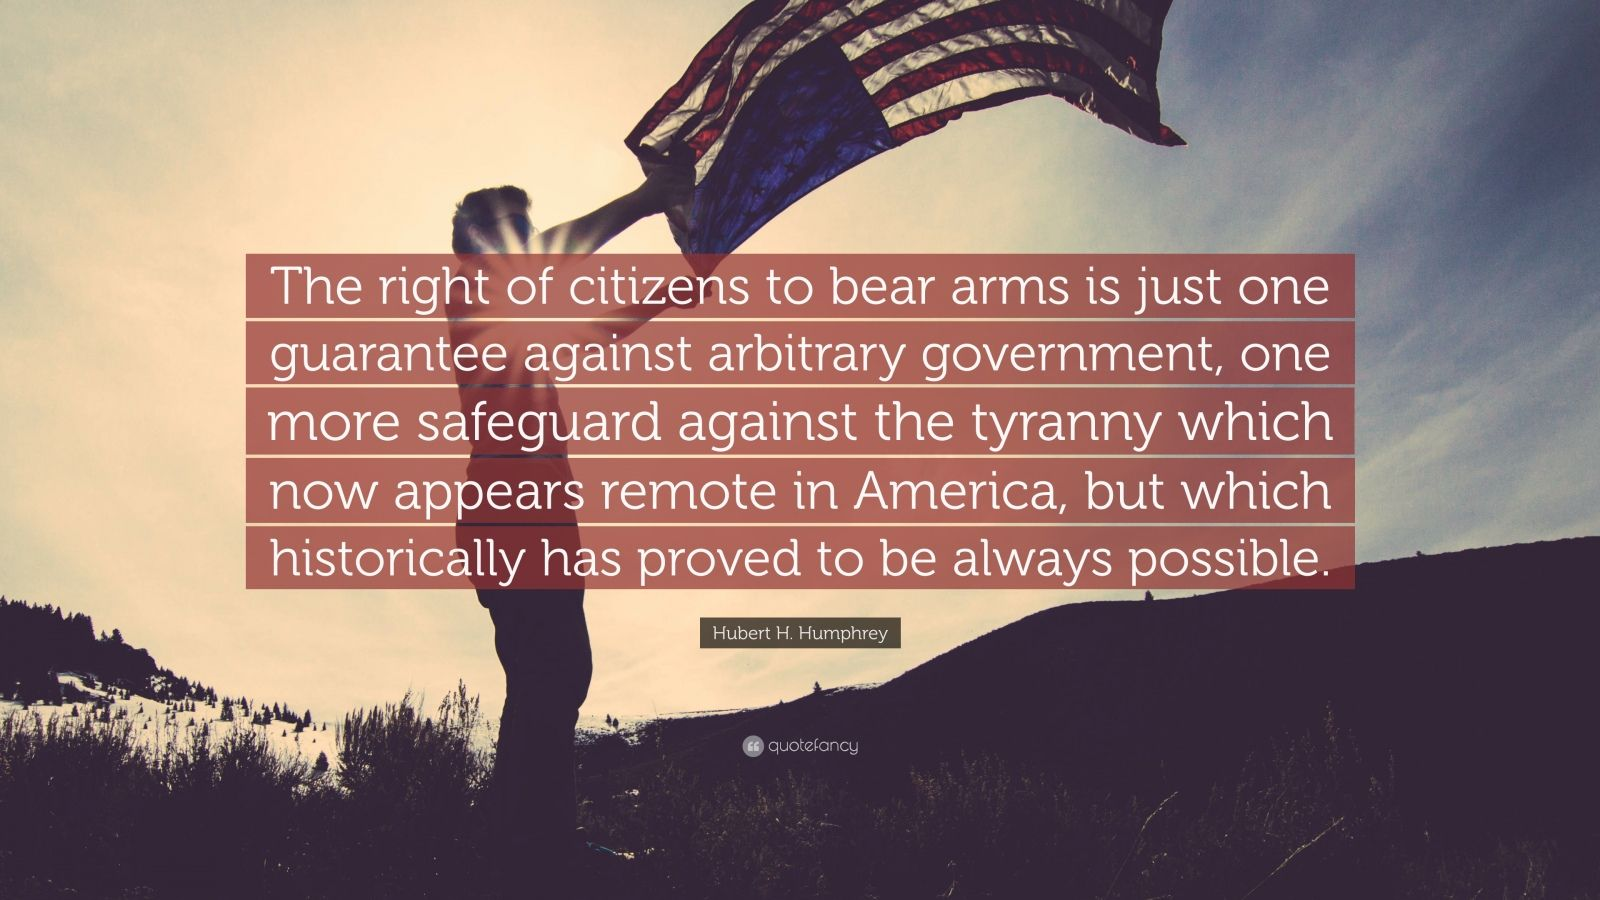 """Hubert H. Humphrey Quote: """"The right of citizens to bear arms is just one guarantee against arbitrary government, one more safeguard against the tyranny which now appears remote in America, but which historically has proved to be always possible."""""""